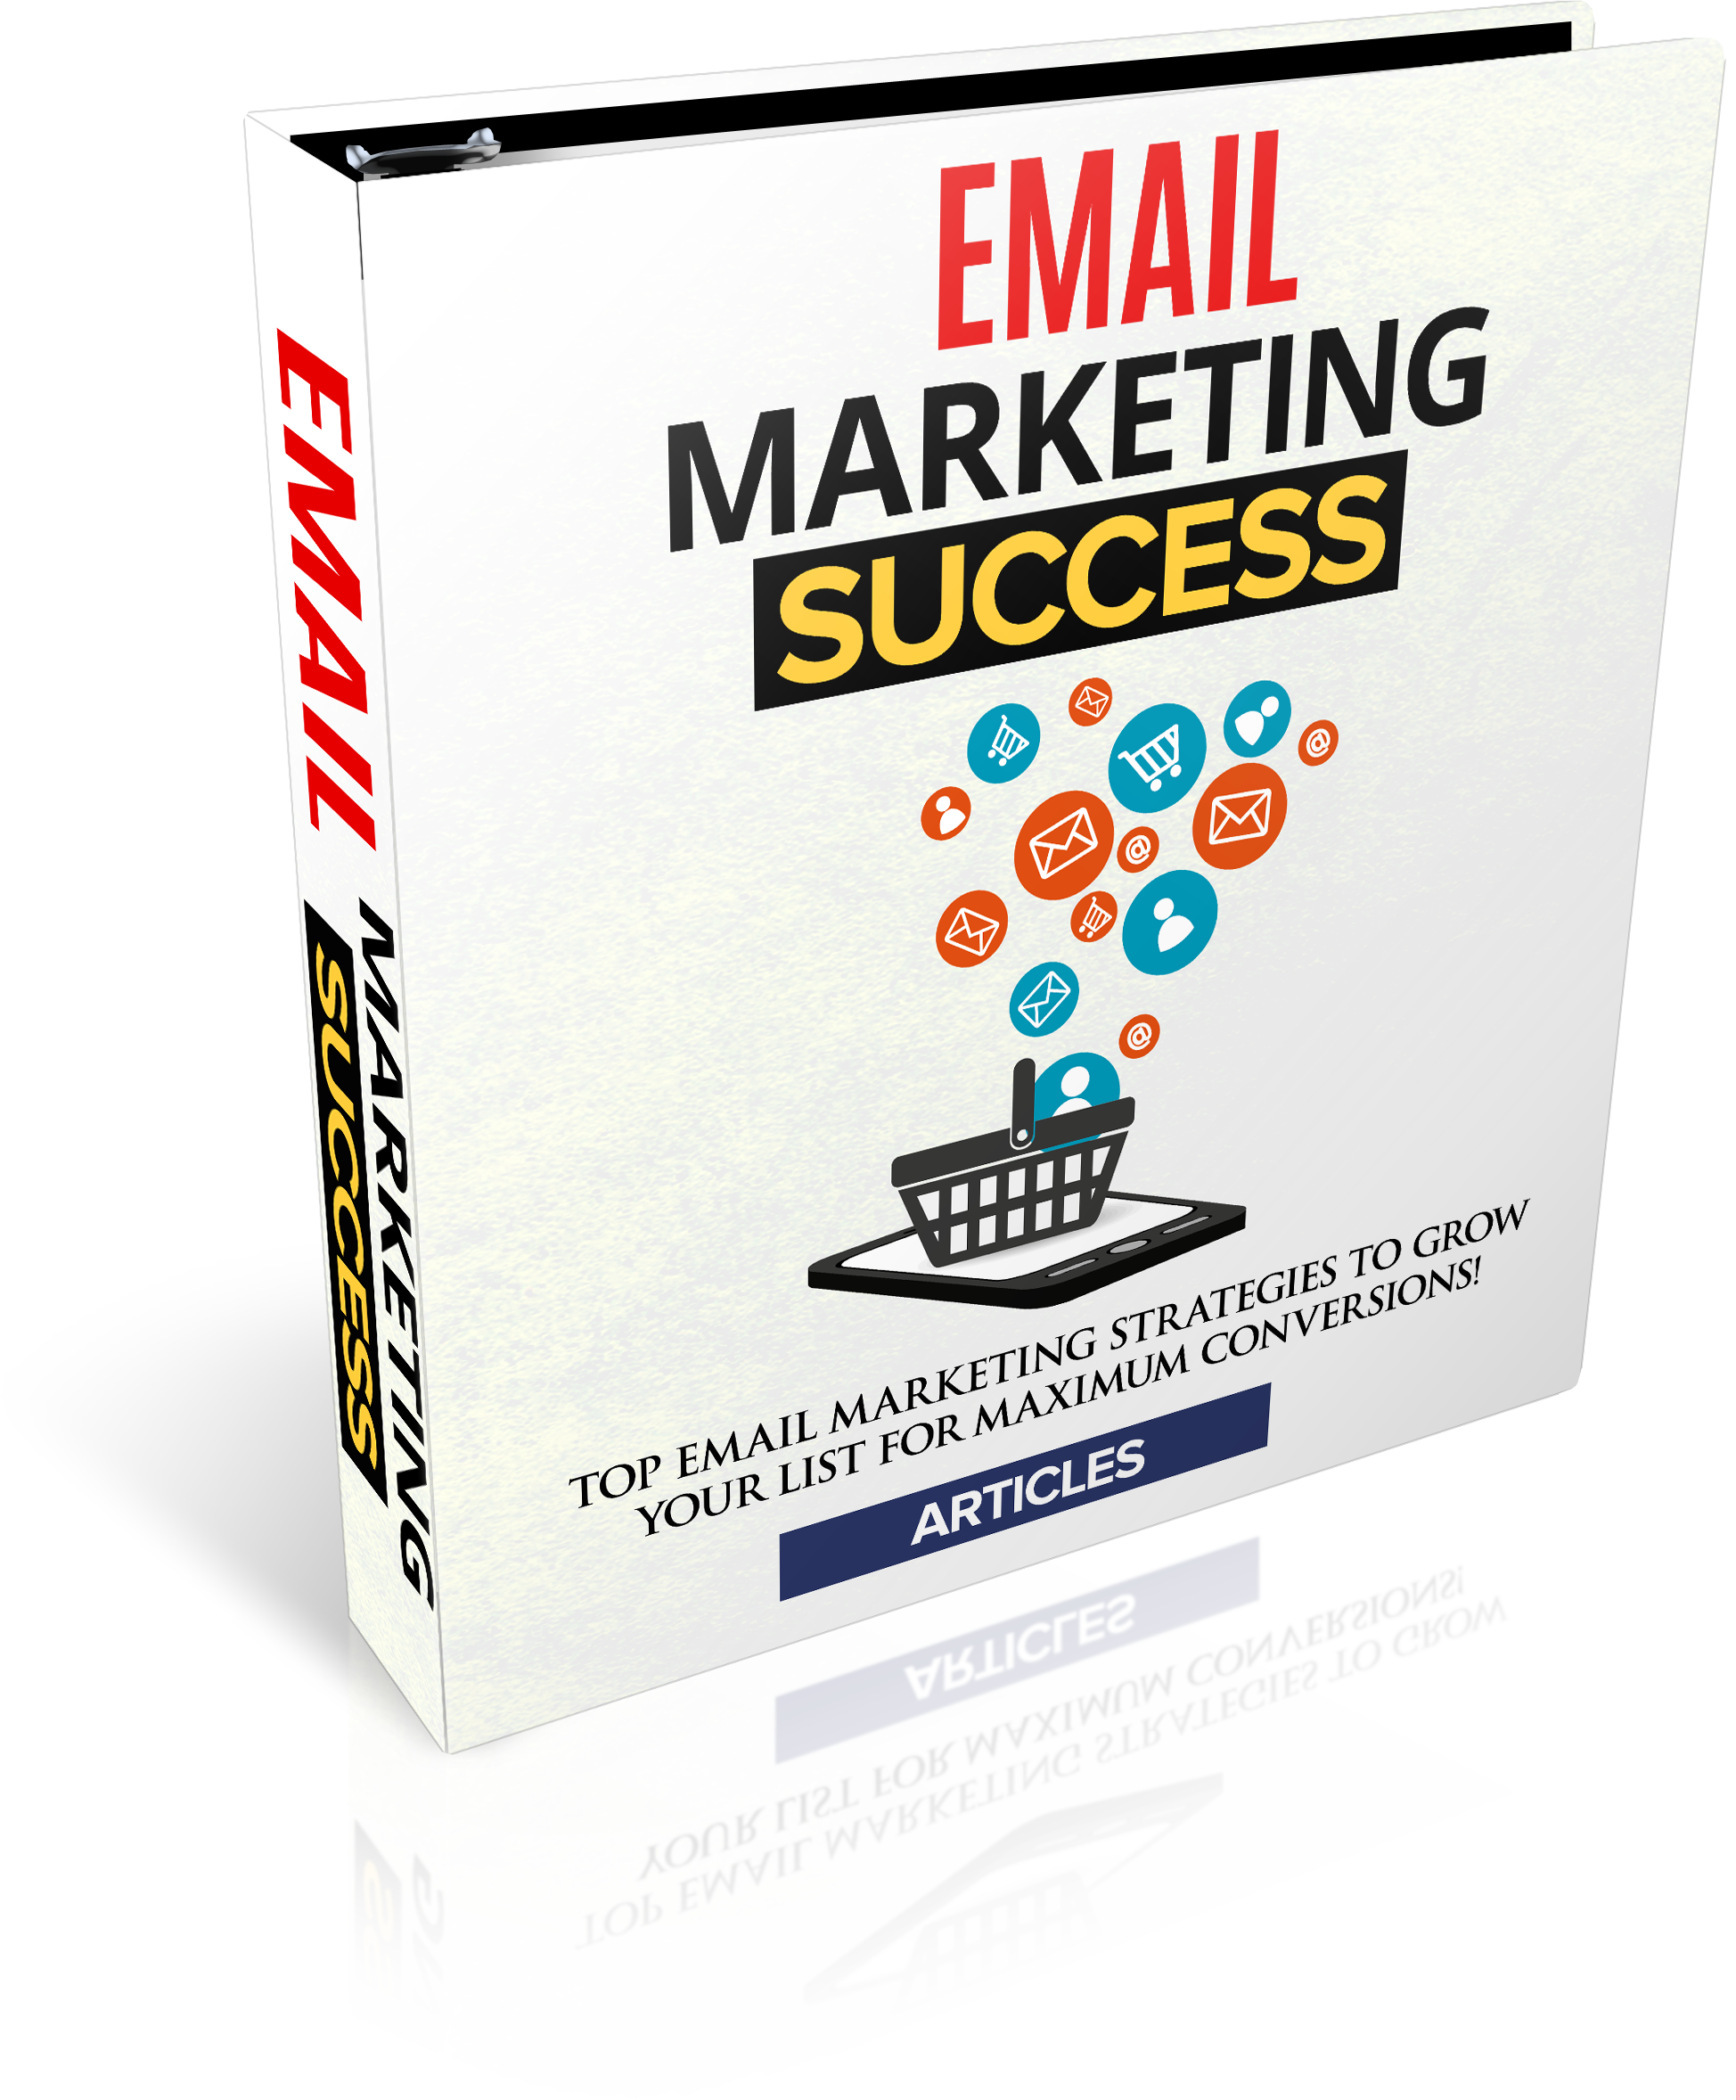 Email Marketing Success Quality Articles